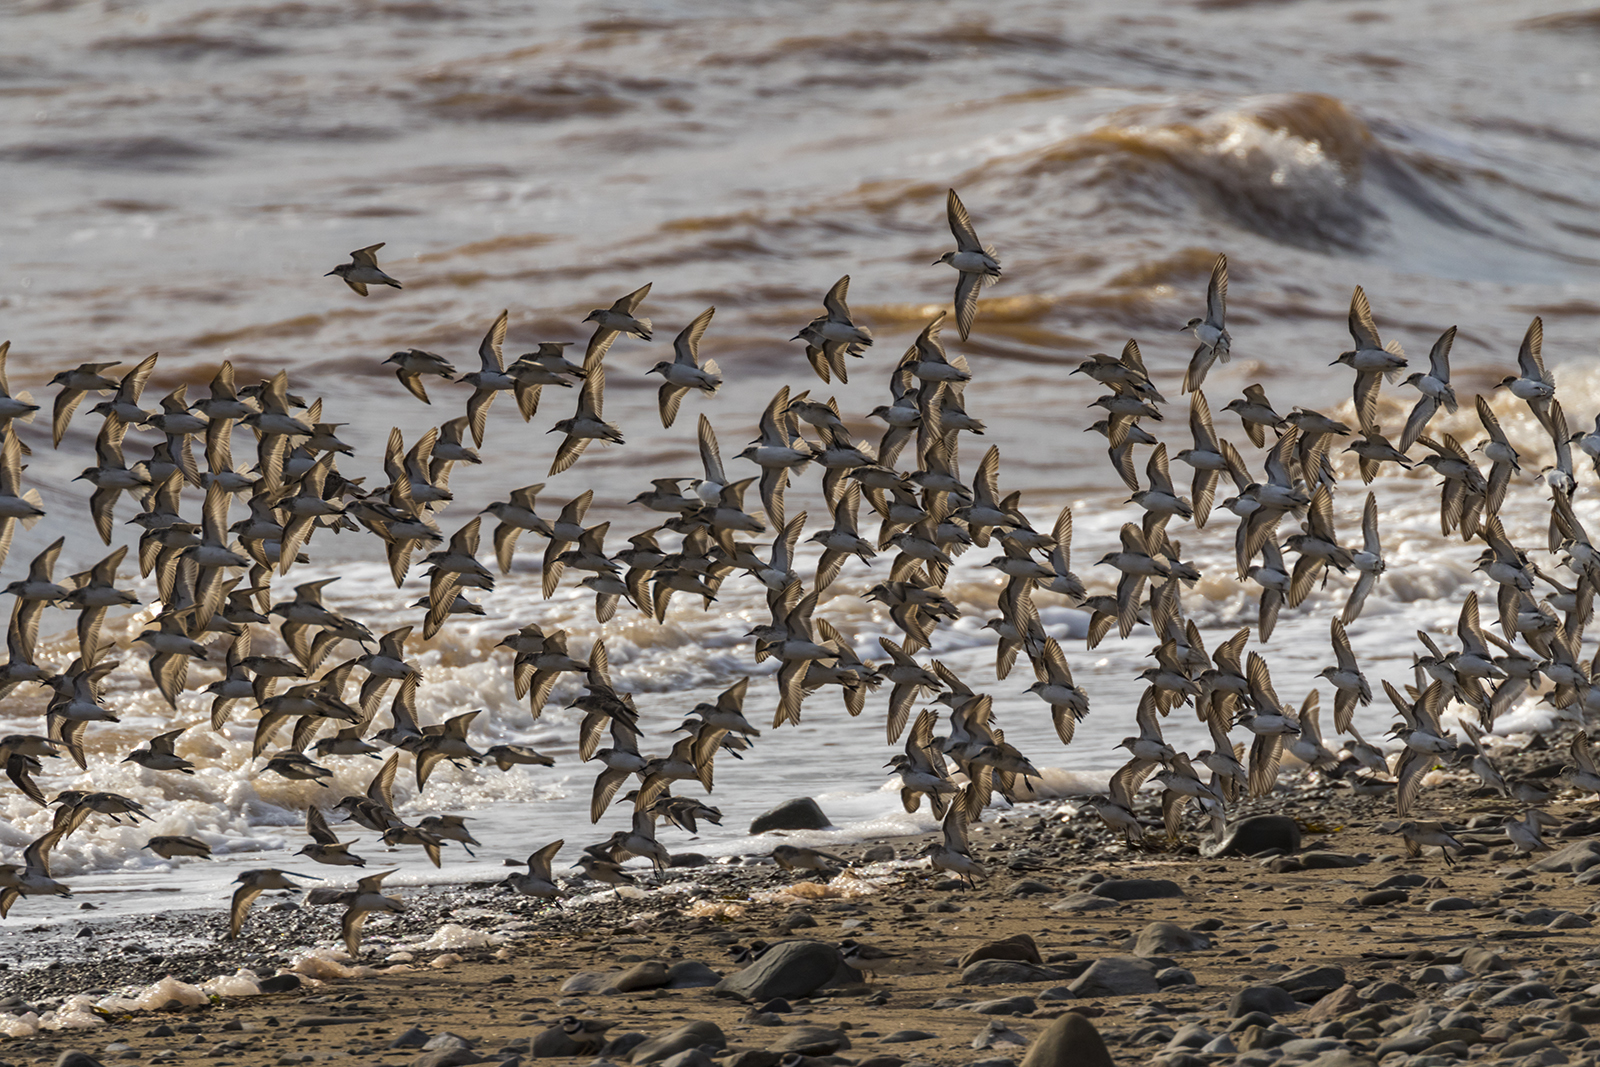 Semipalmated_Sandpipers-08-BRimages.ca